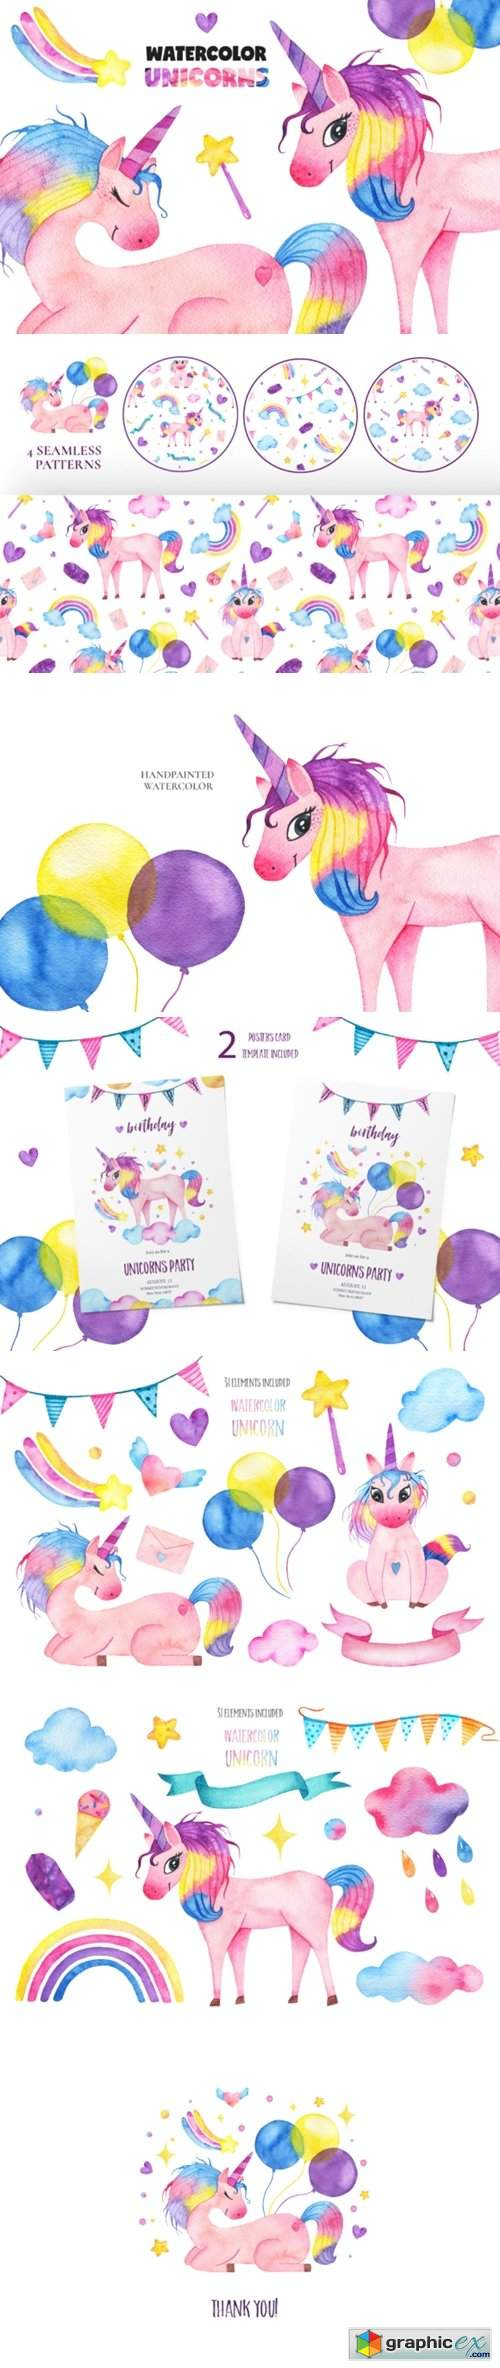 Cute Watercolor Unicorns Collection